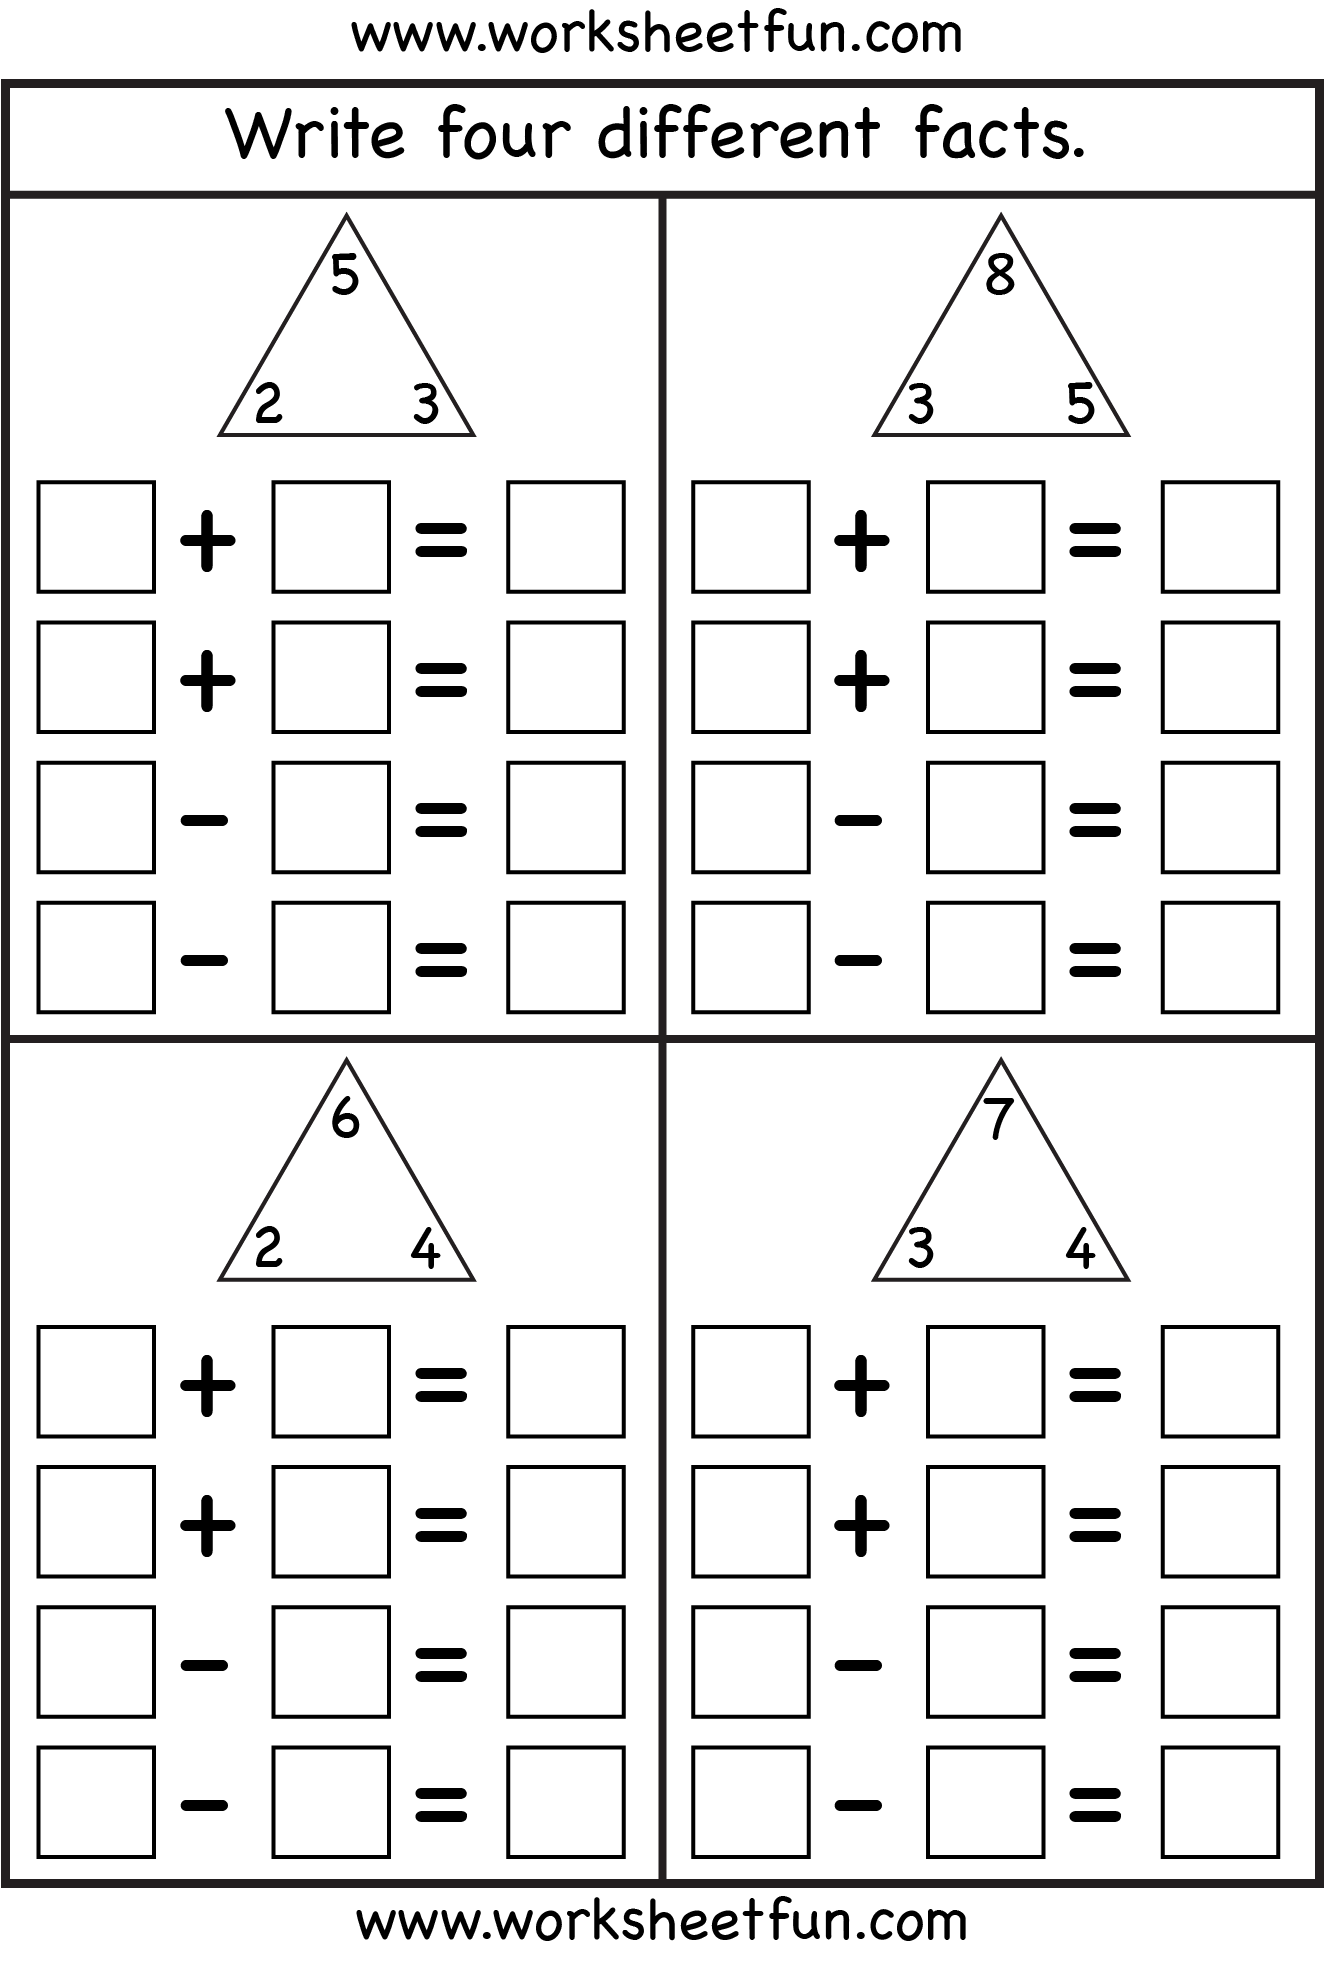 Worksheets Fact Family Worksheets pinterest the worlds catalog of ideas fact family 4 worksheets